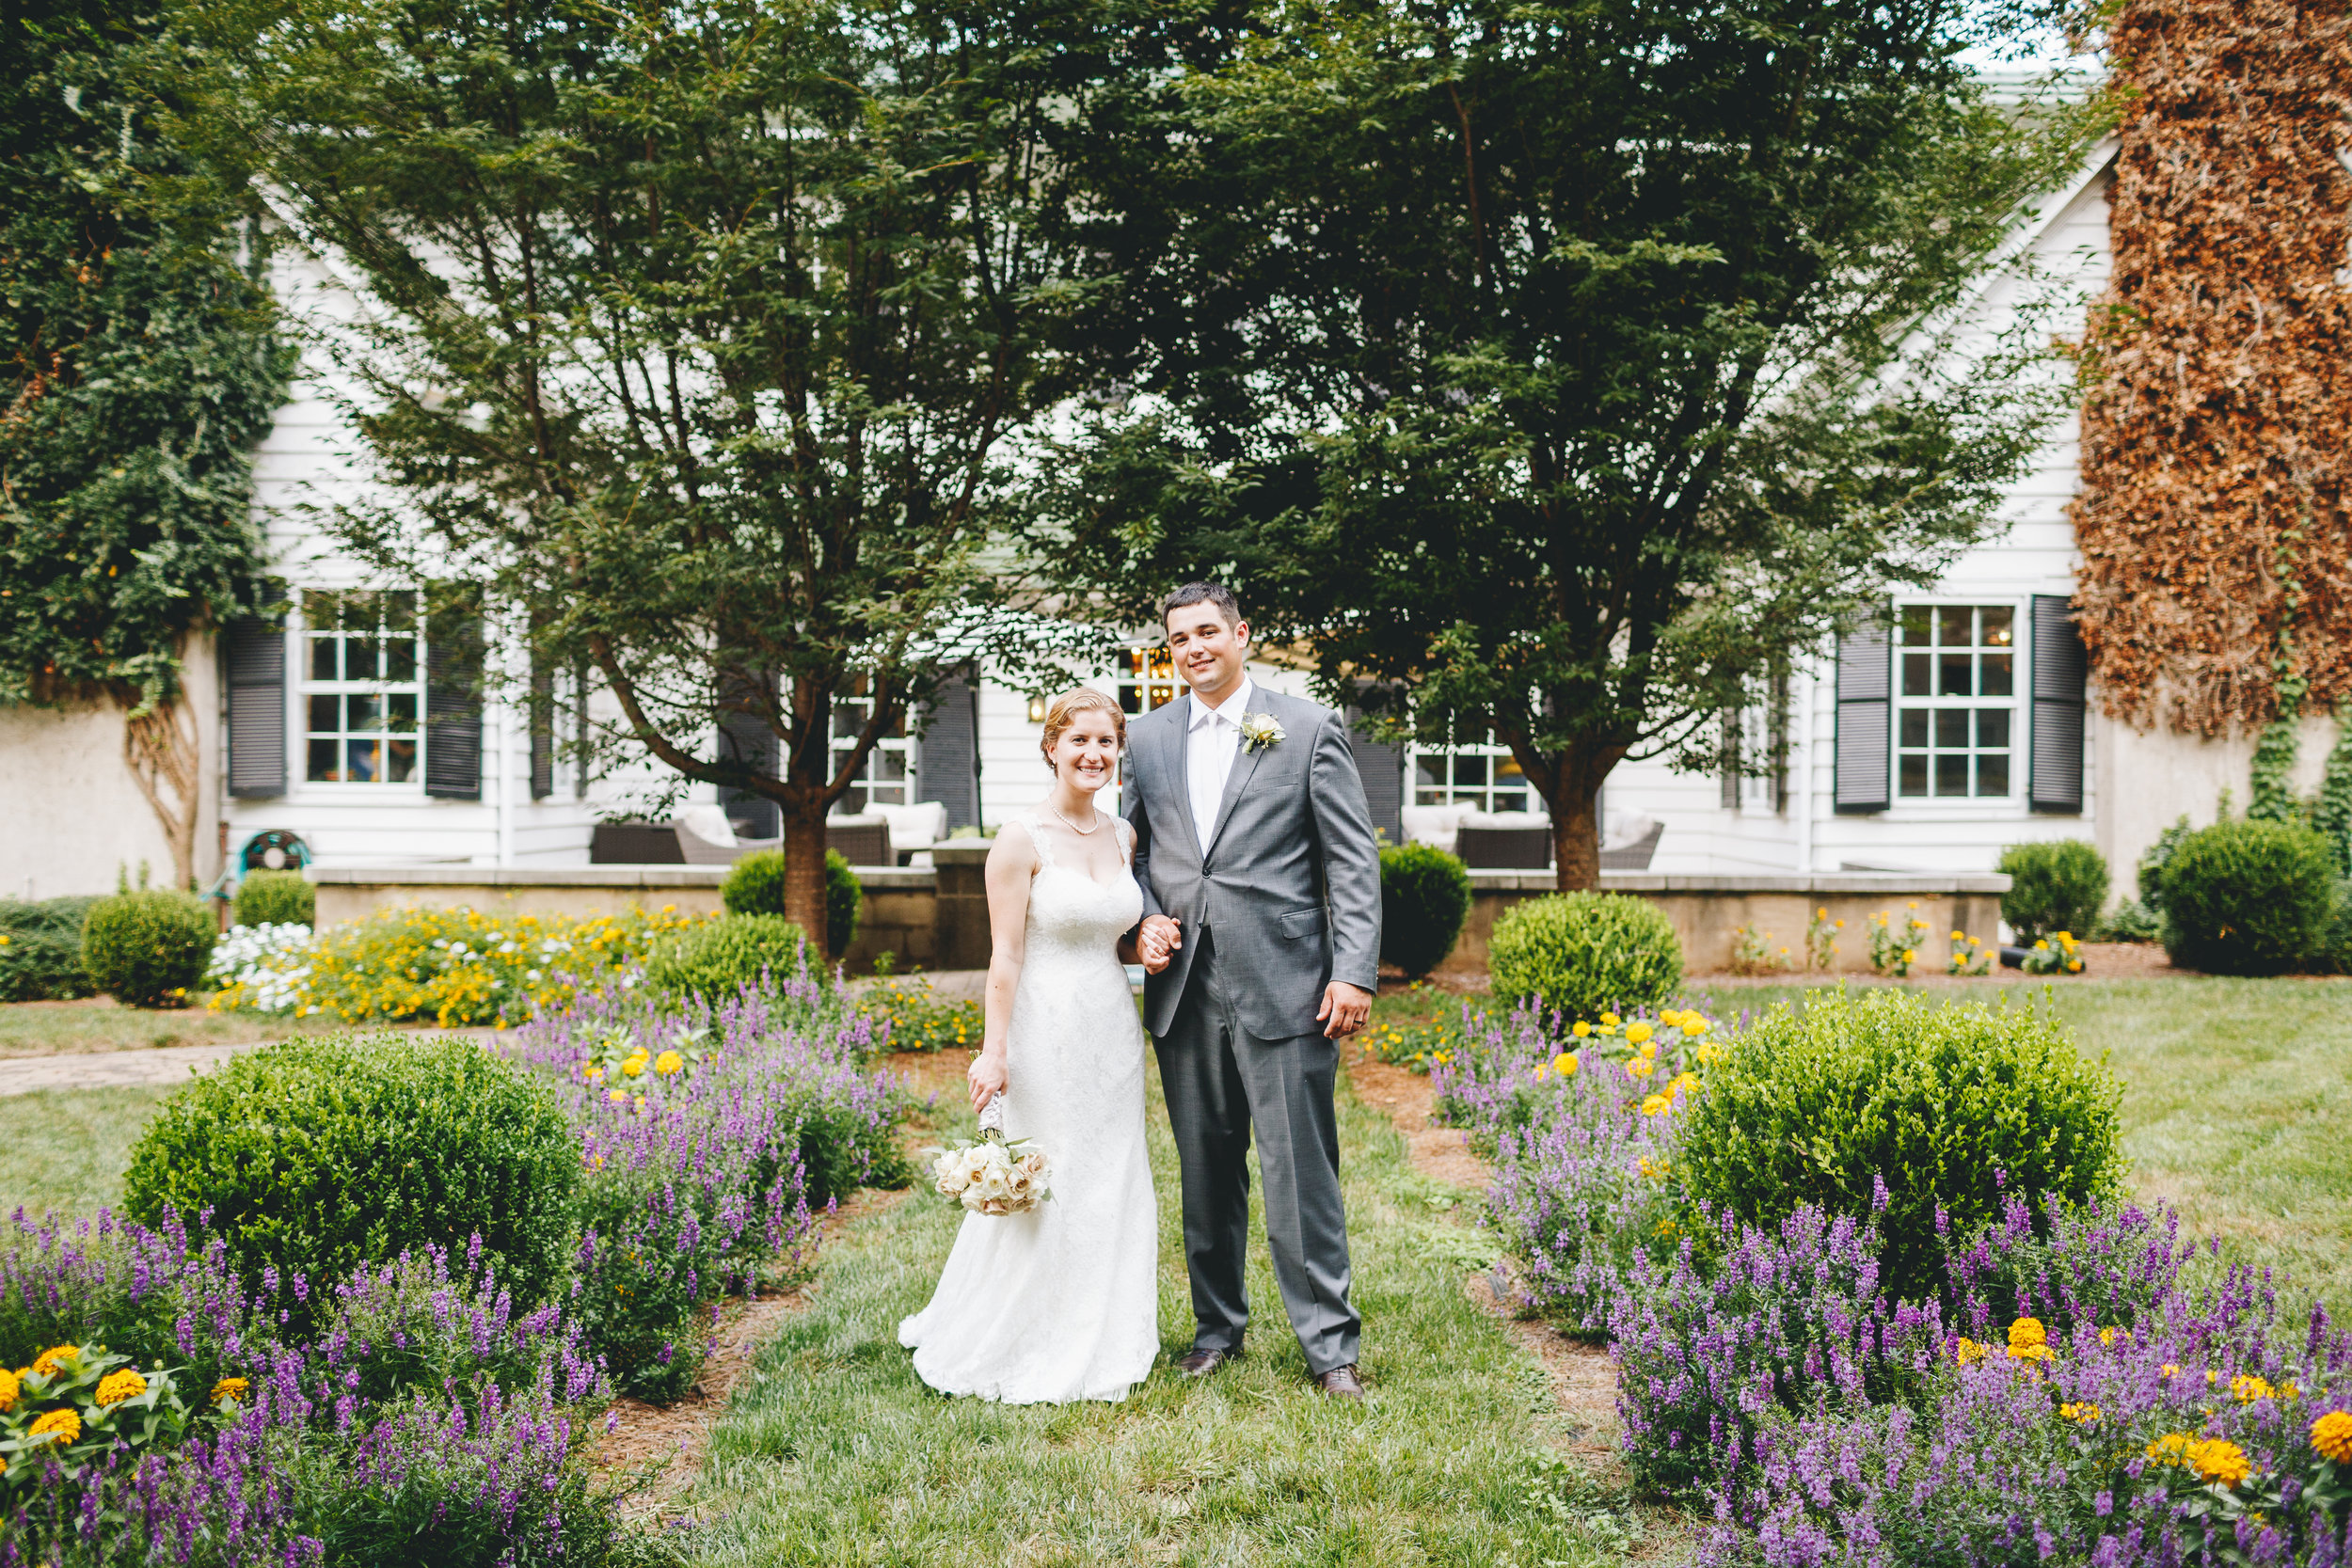 The Morehead Inn wedding